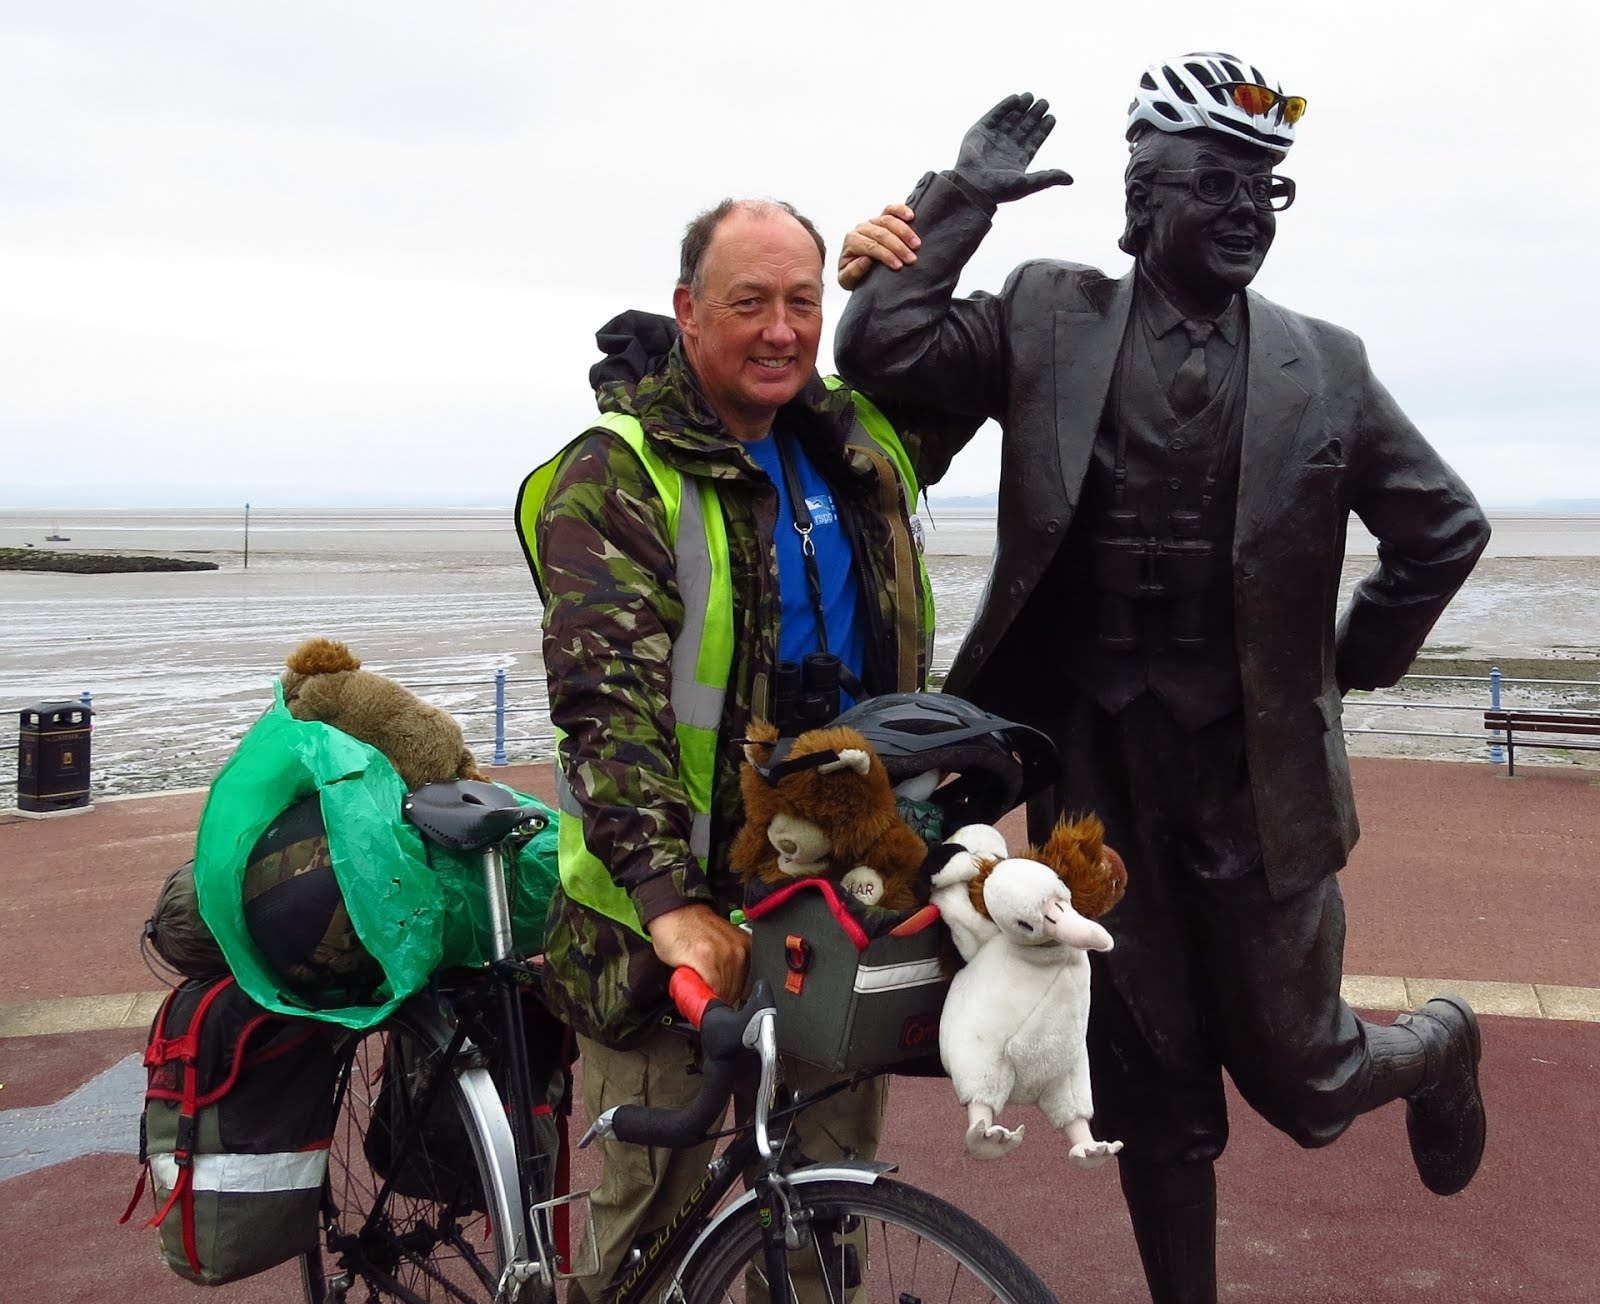 Gary Prescott - The Biking Birder